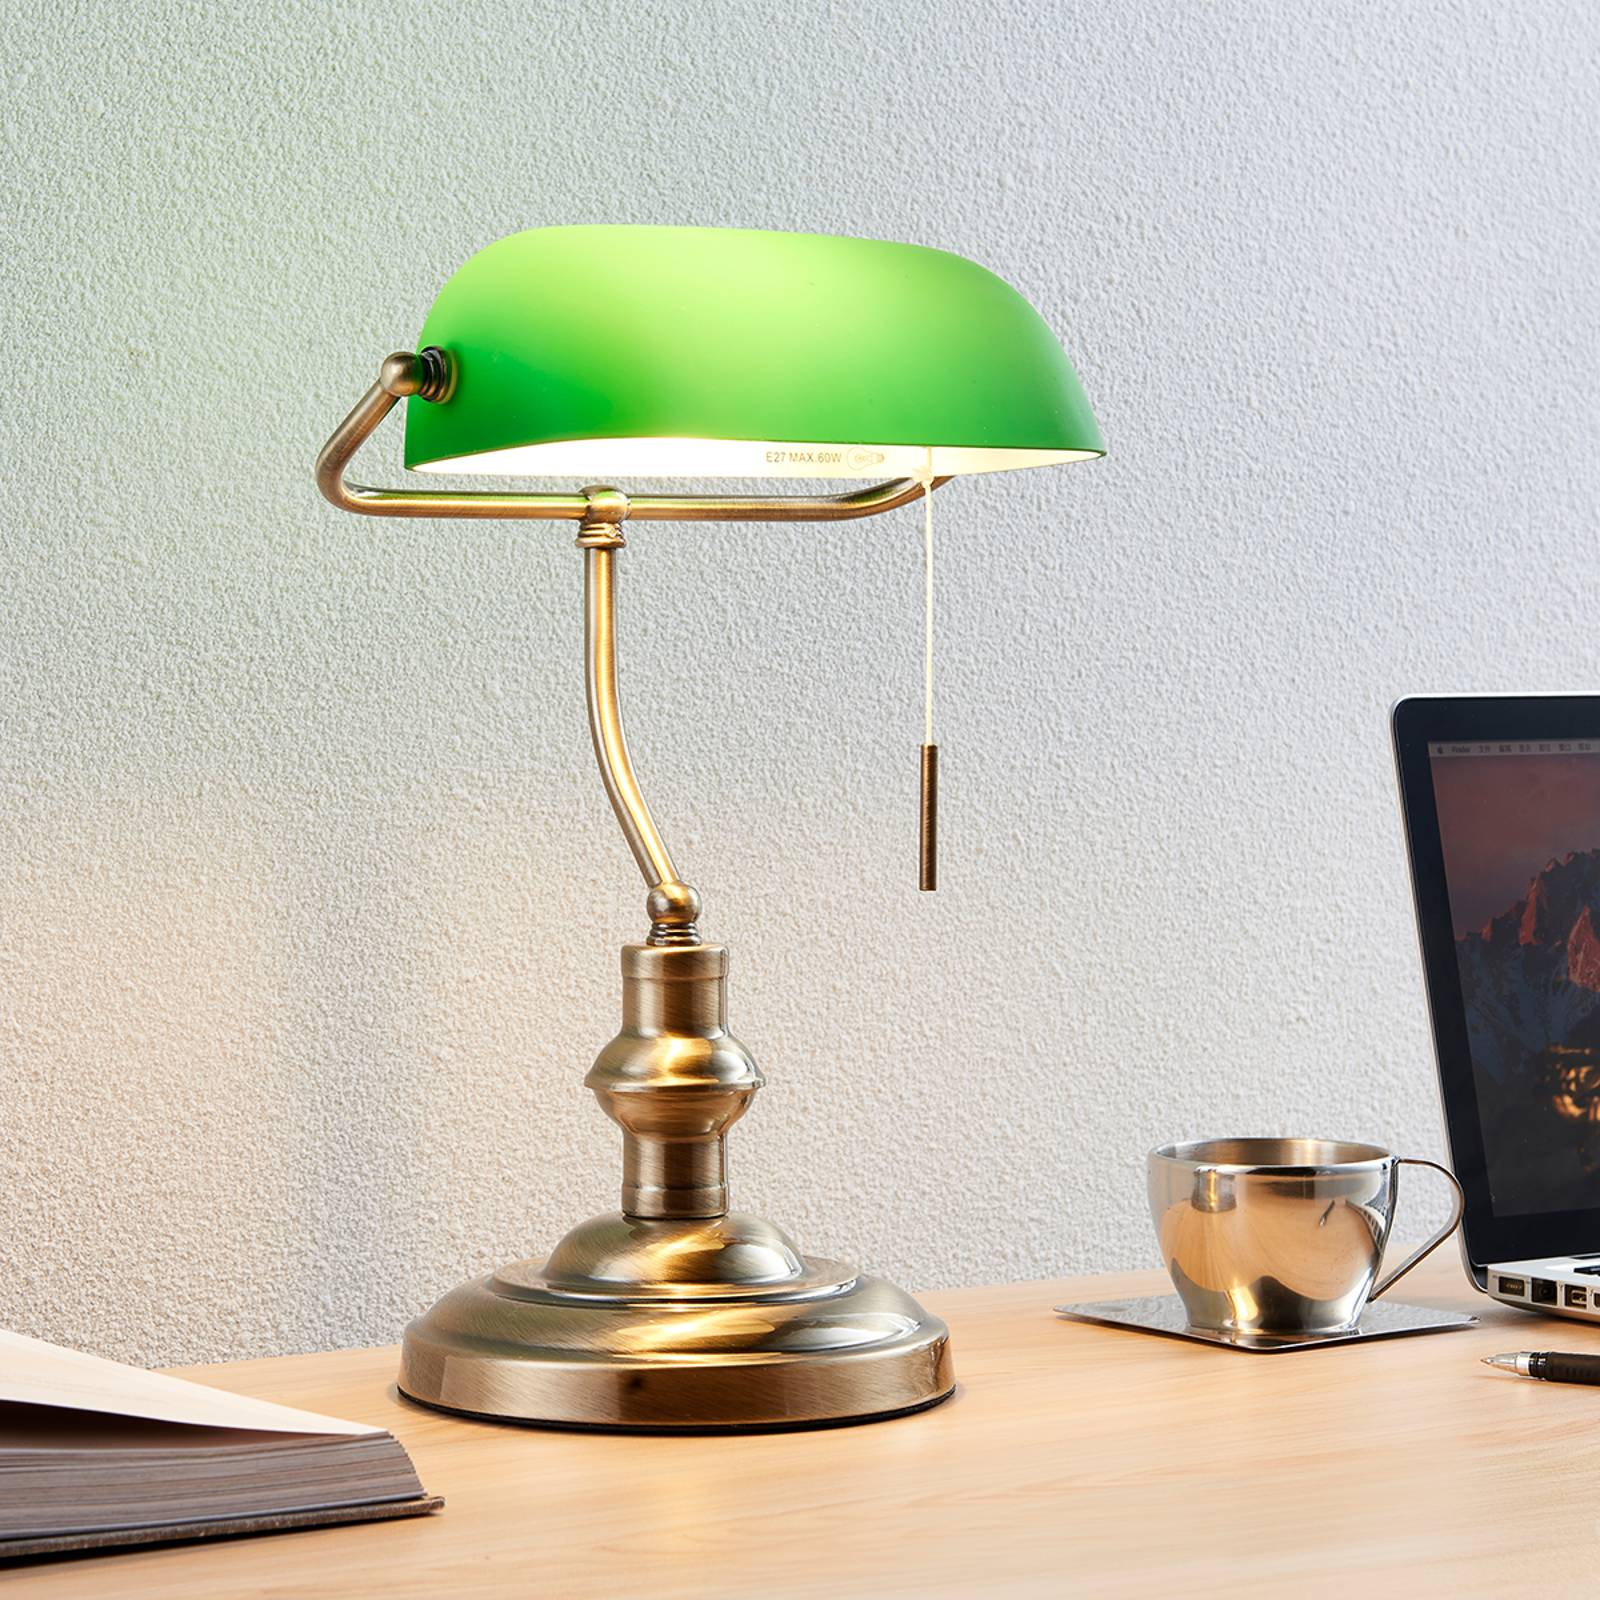 Milenka - desk lamp with green lampshade from Lindby